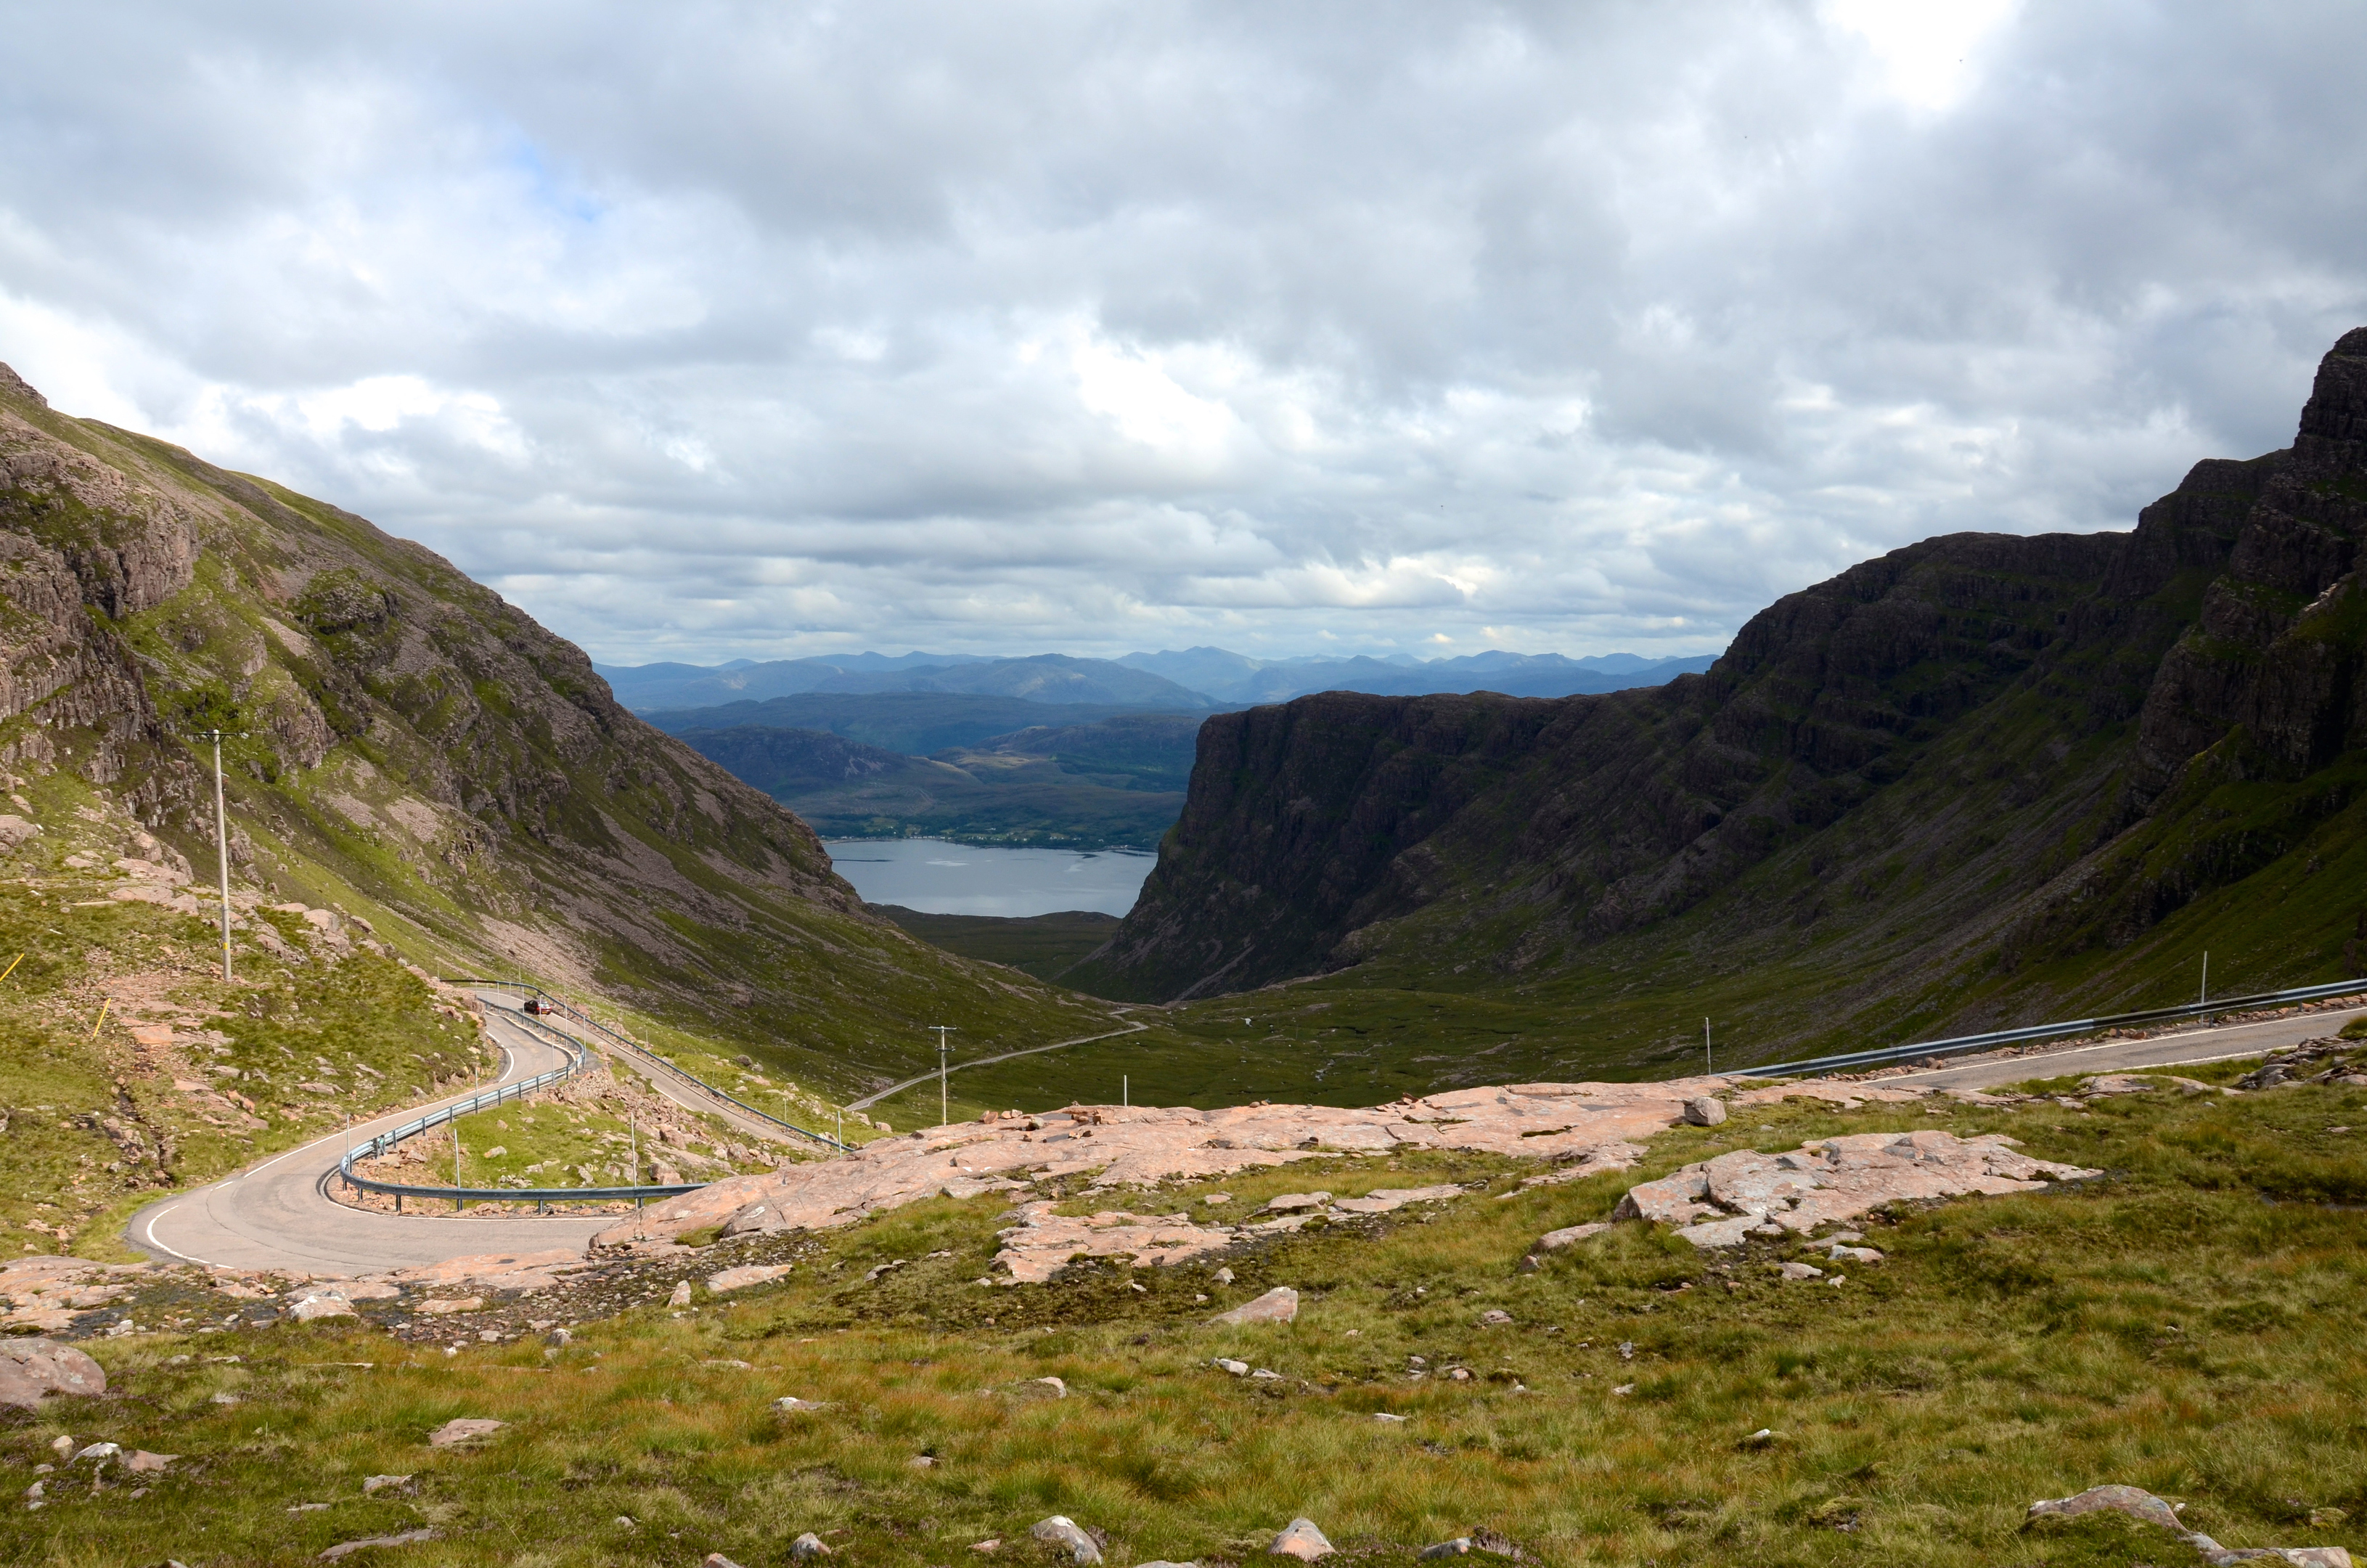 The road at Bleach Na Ba, one of the highest roads in the UK. (iStock)